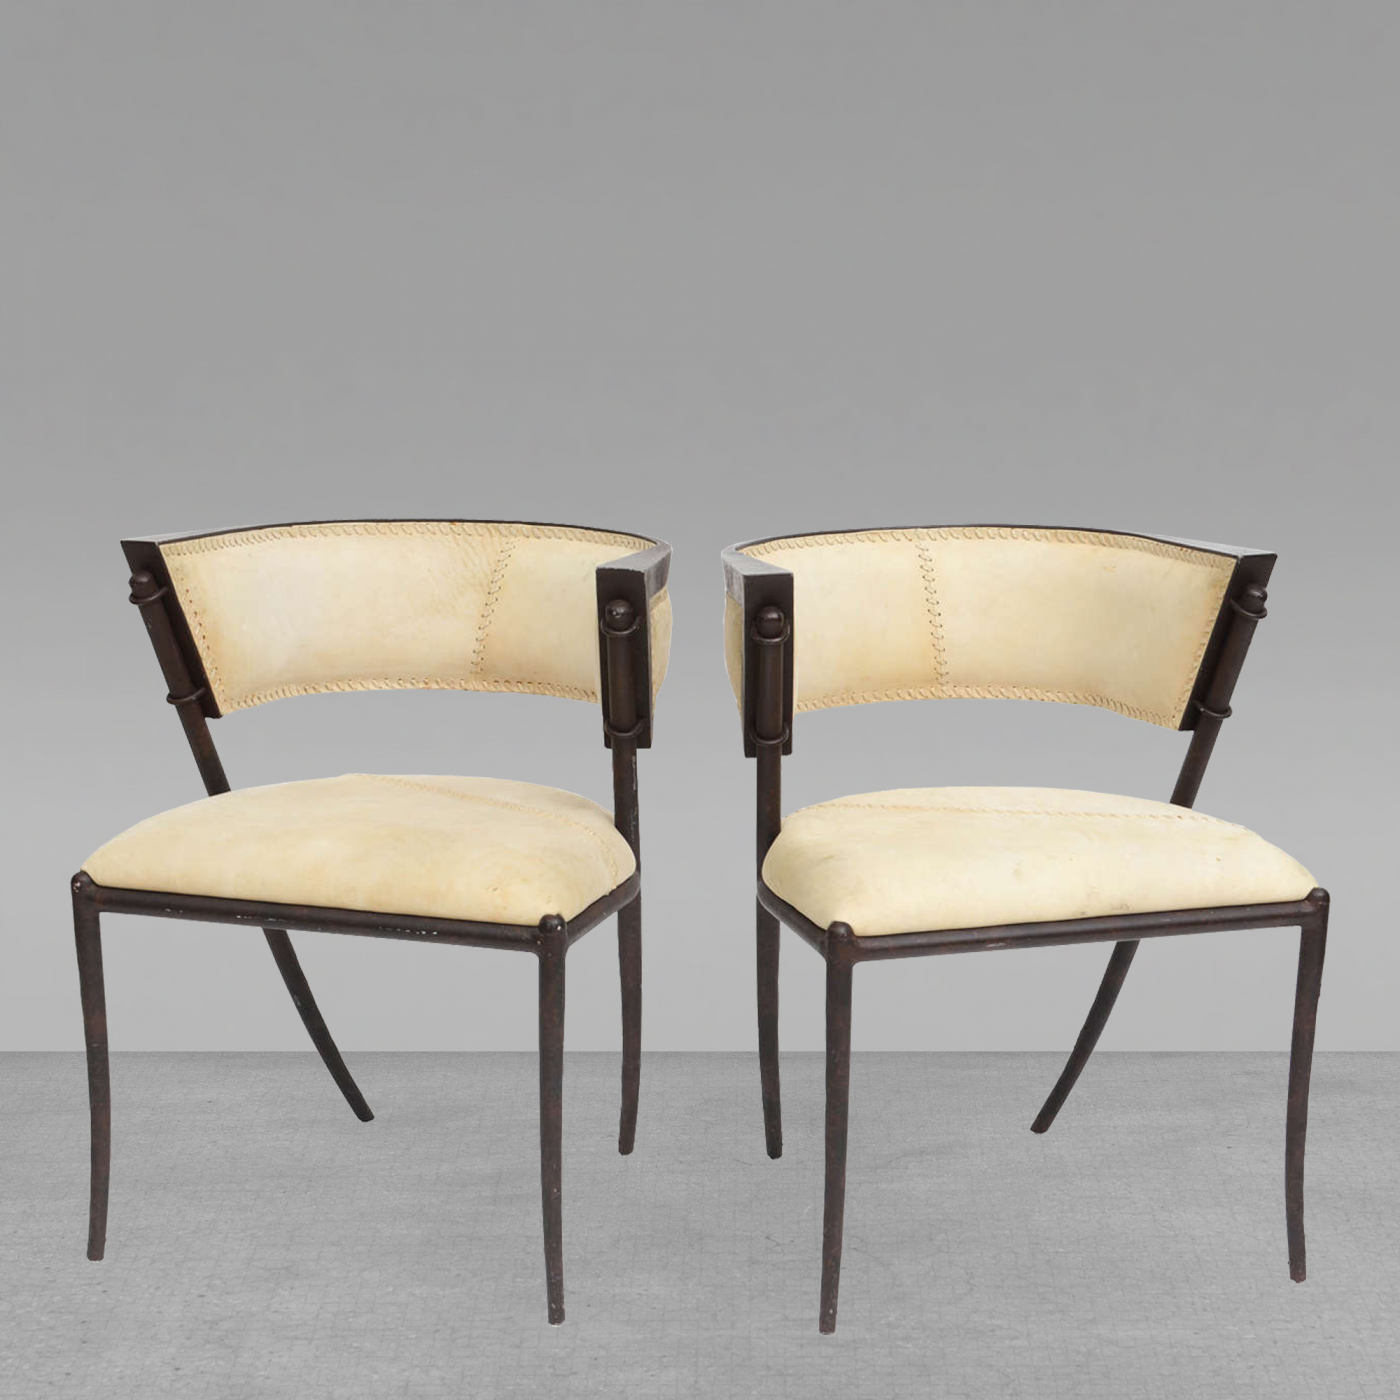 Prime Pair Of Italian Modern Klismos Form Bronze And Leather Upholstered Chairs Unemploymentrelief Wooden Chair Designs For Living Room Unemploymentrelieforg